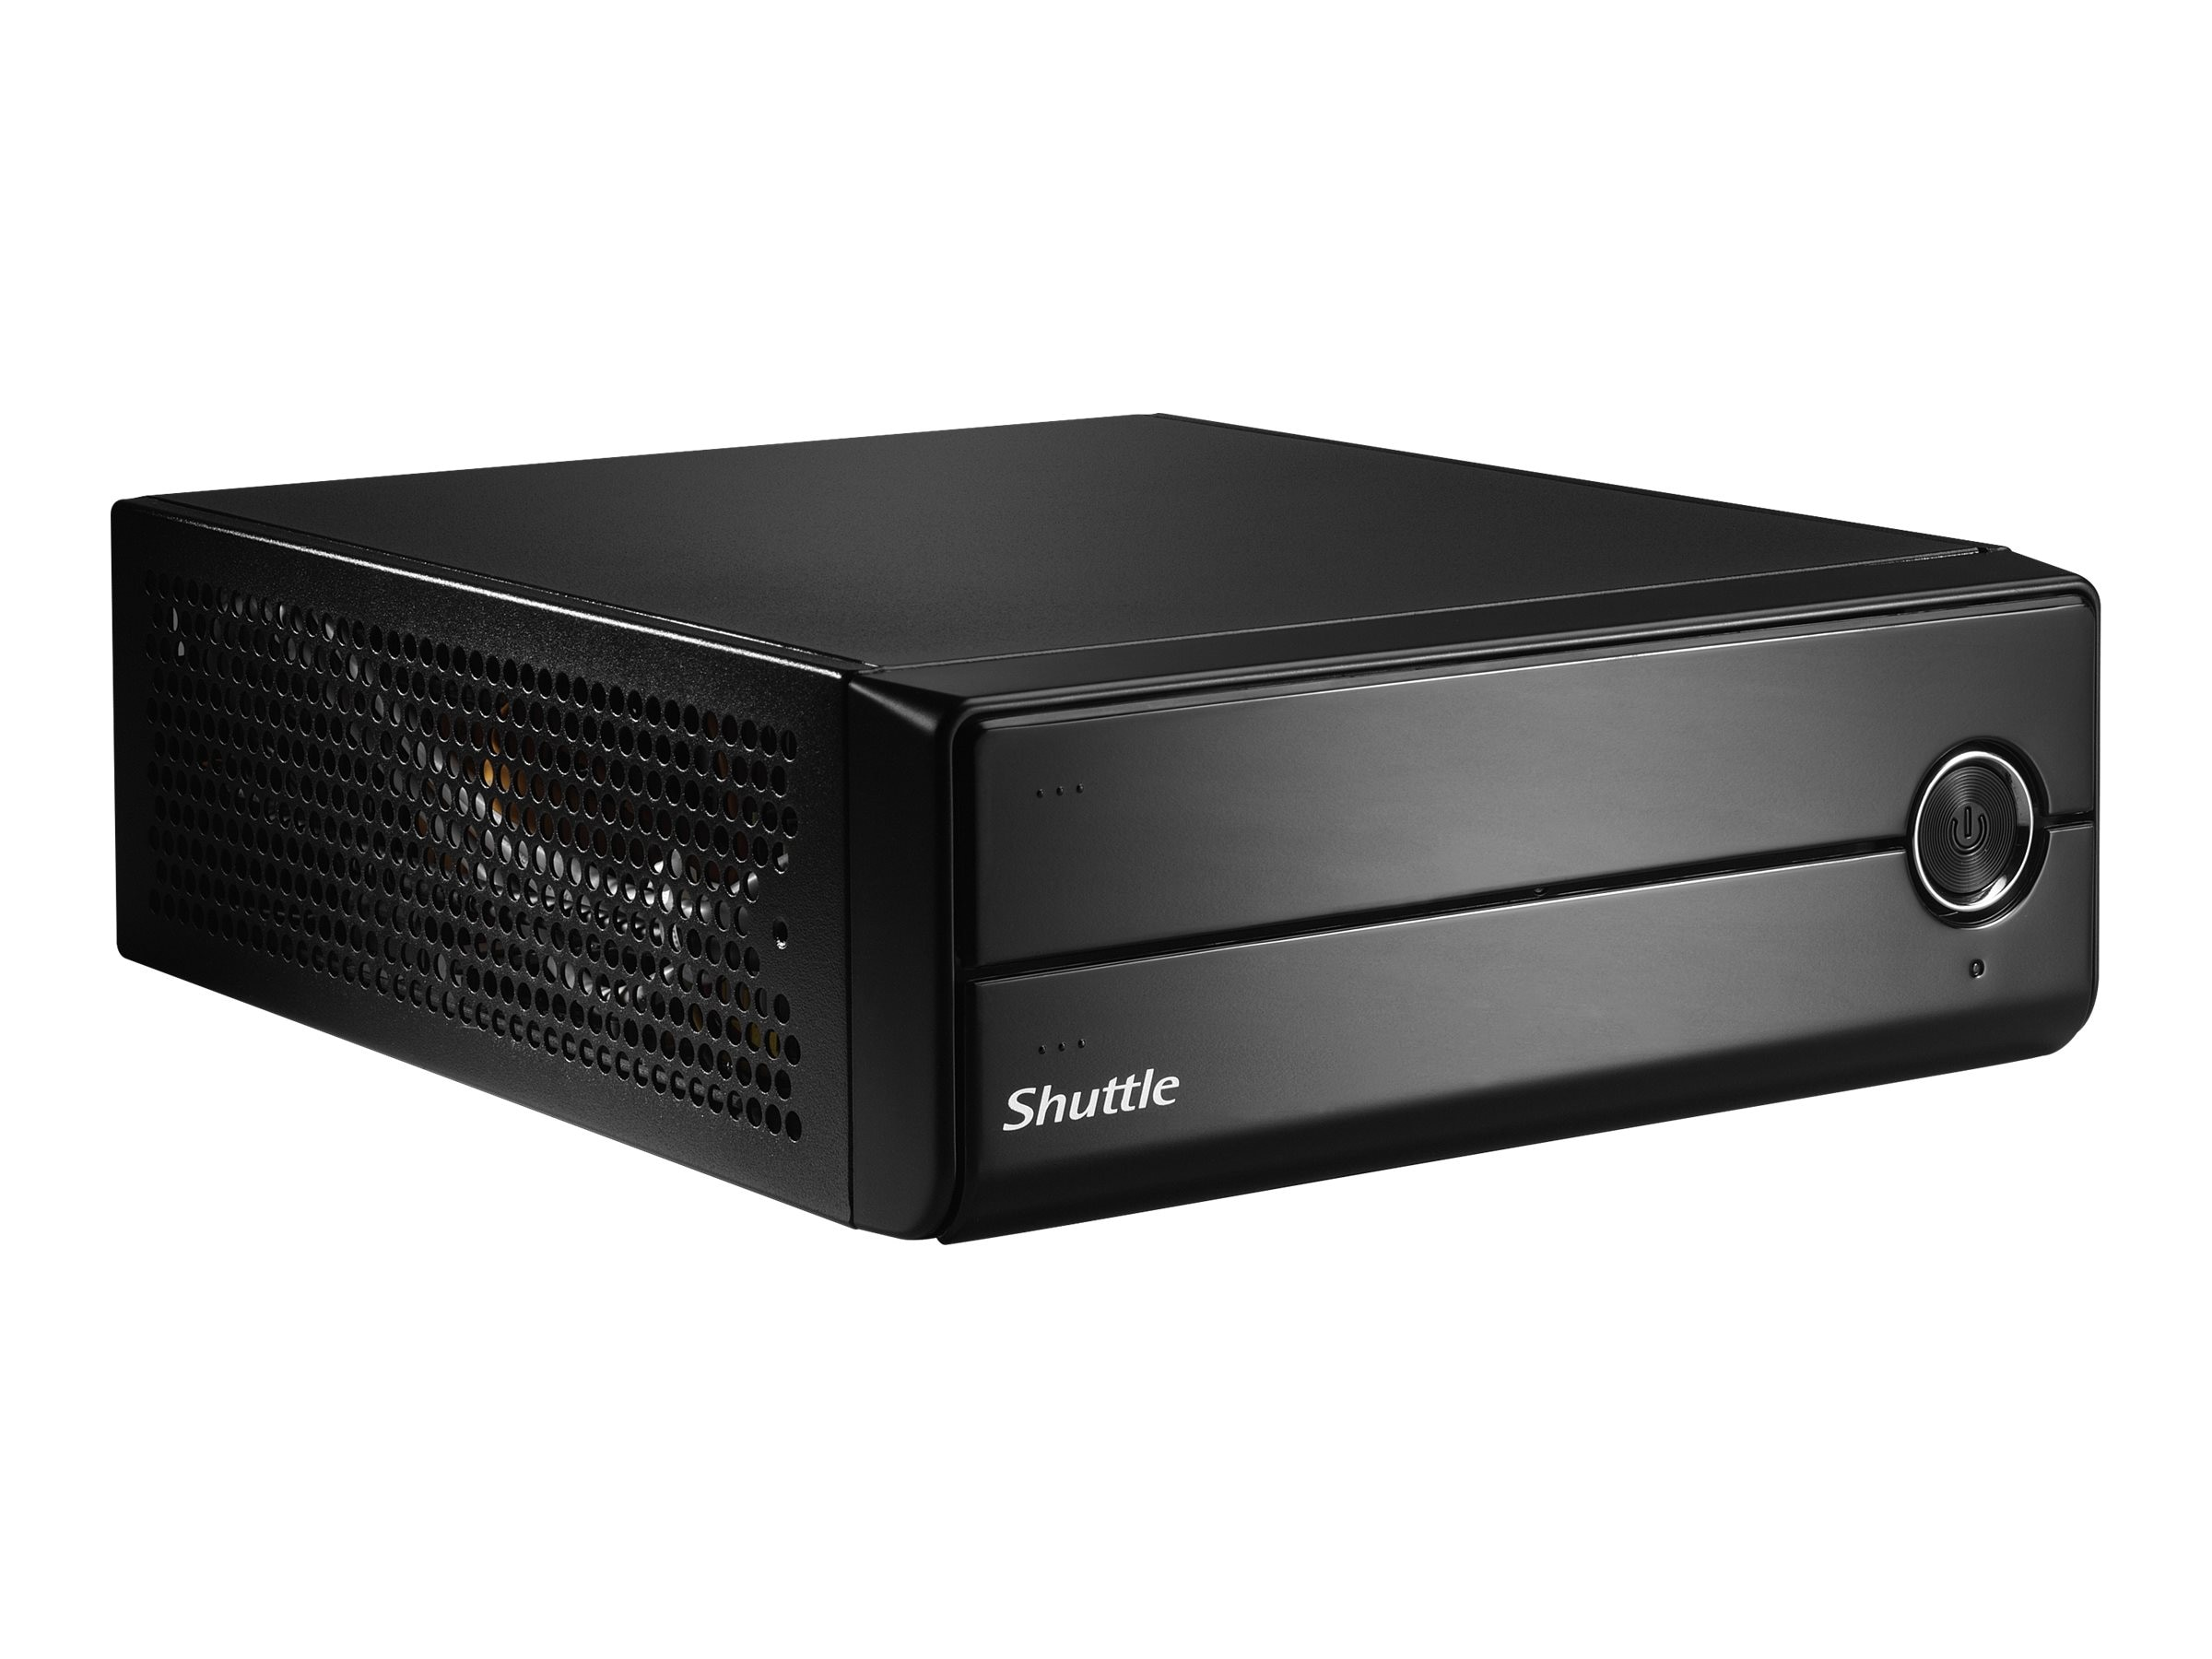 Shuttle Barebones, XH81V Slim PC Mini-ITX H81 Core i3 i5 i7 Family Max.16GB DDR3 1x2.5 Bay NIC NoOS, XH81V, 17918070, Barebones Systems